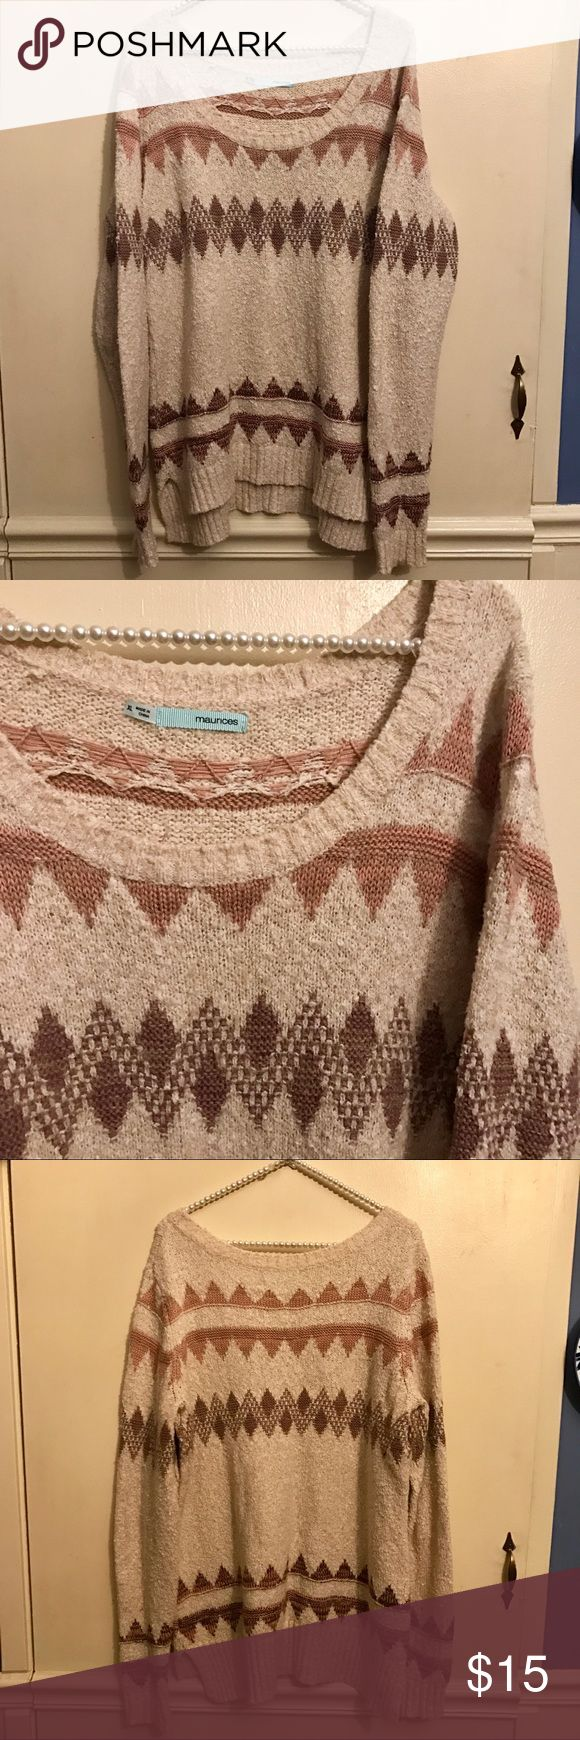 Maurices Soft Oatmeal Aztec Print Sweater Size XL This sweater is the definition of soft and cuddly. From Maurices, this oatmeal colored sweater has a triangular Aztec design is shades of brown. The sweater has a wide scoop neck and is styled longer in the back. Perfect to pair with your favorite skinny jean or leggings. Great condition with no damage or stains. Size XL. 59% cotton, 28% acrylic and 13% polyester. Maurices Sweaters Crew & Scoop Necks